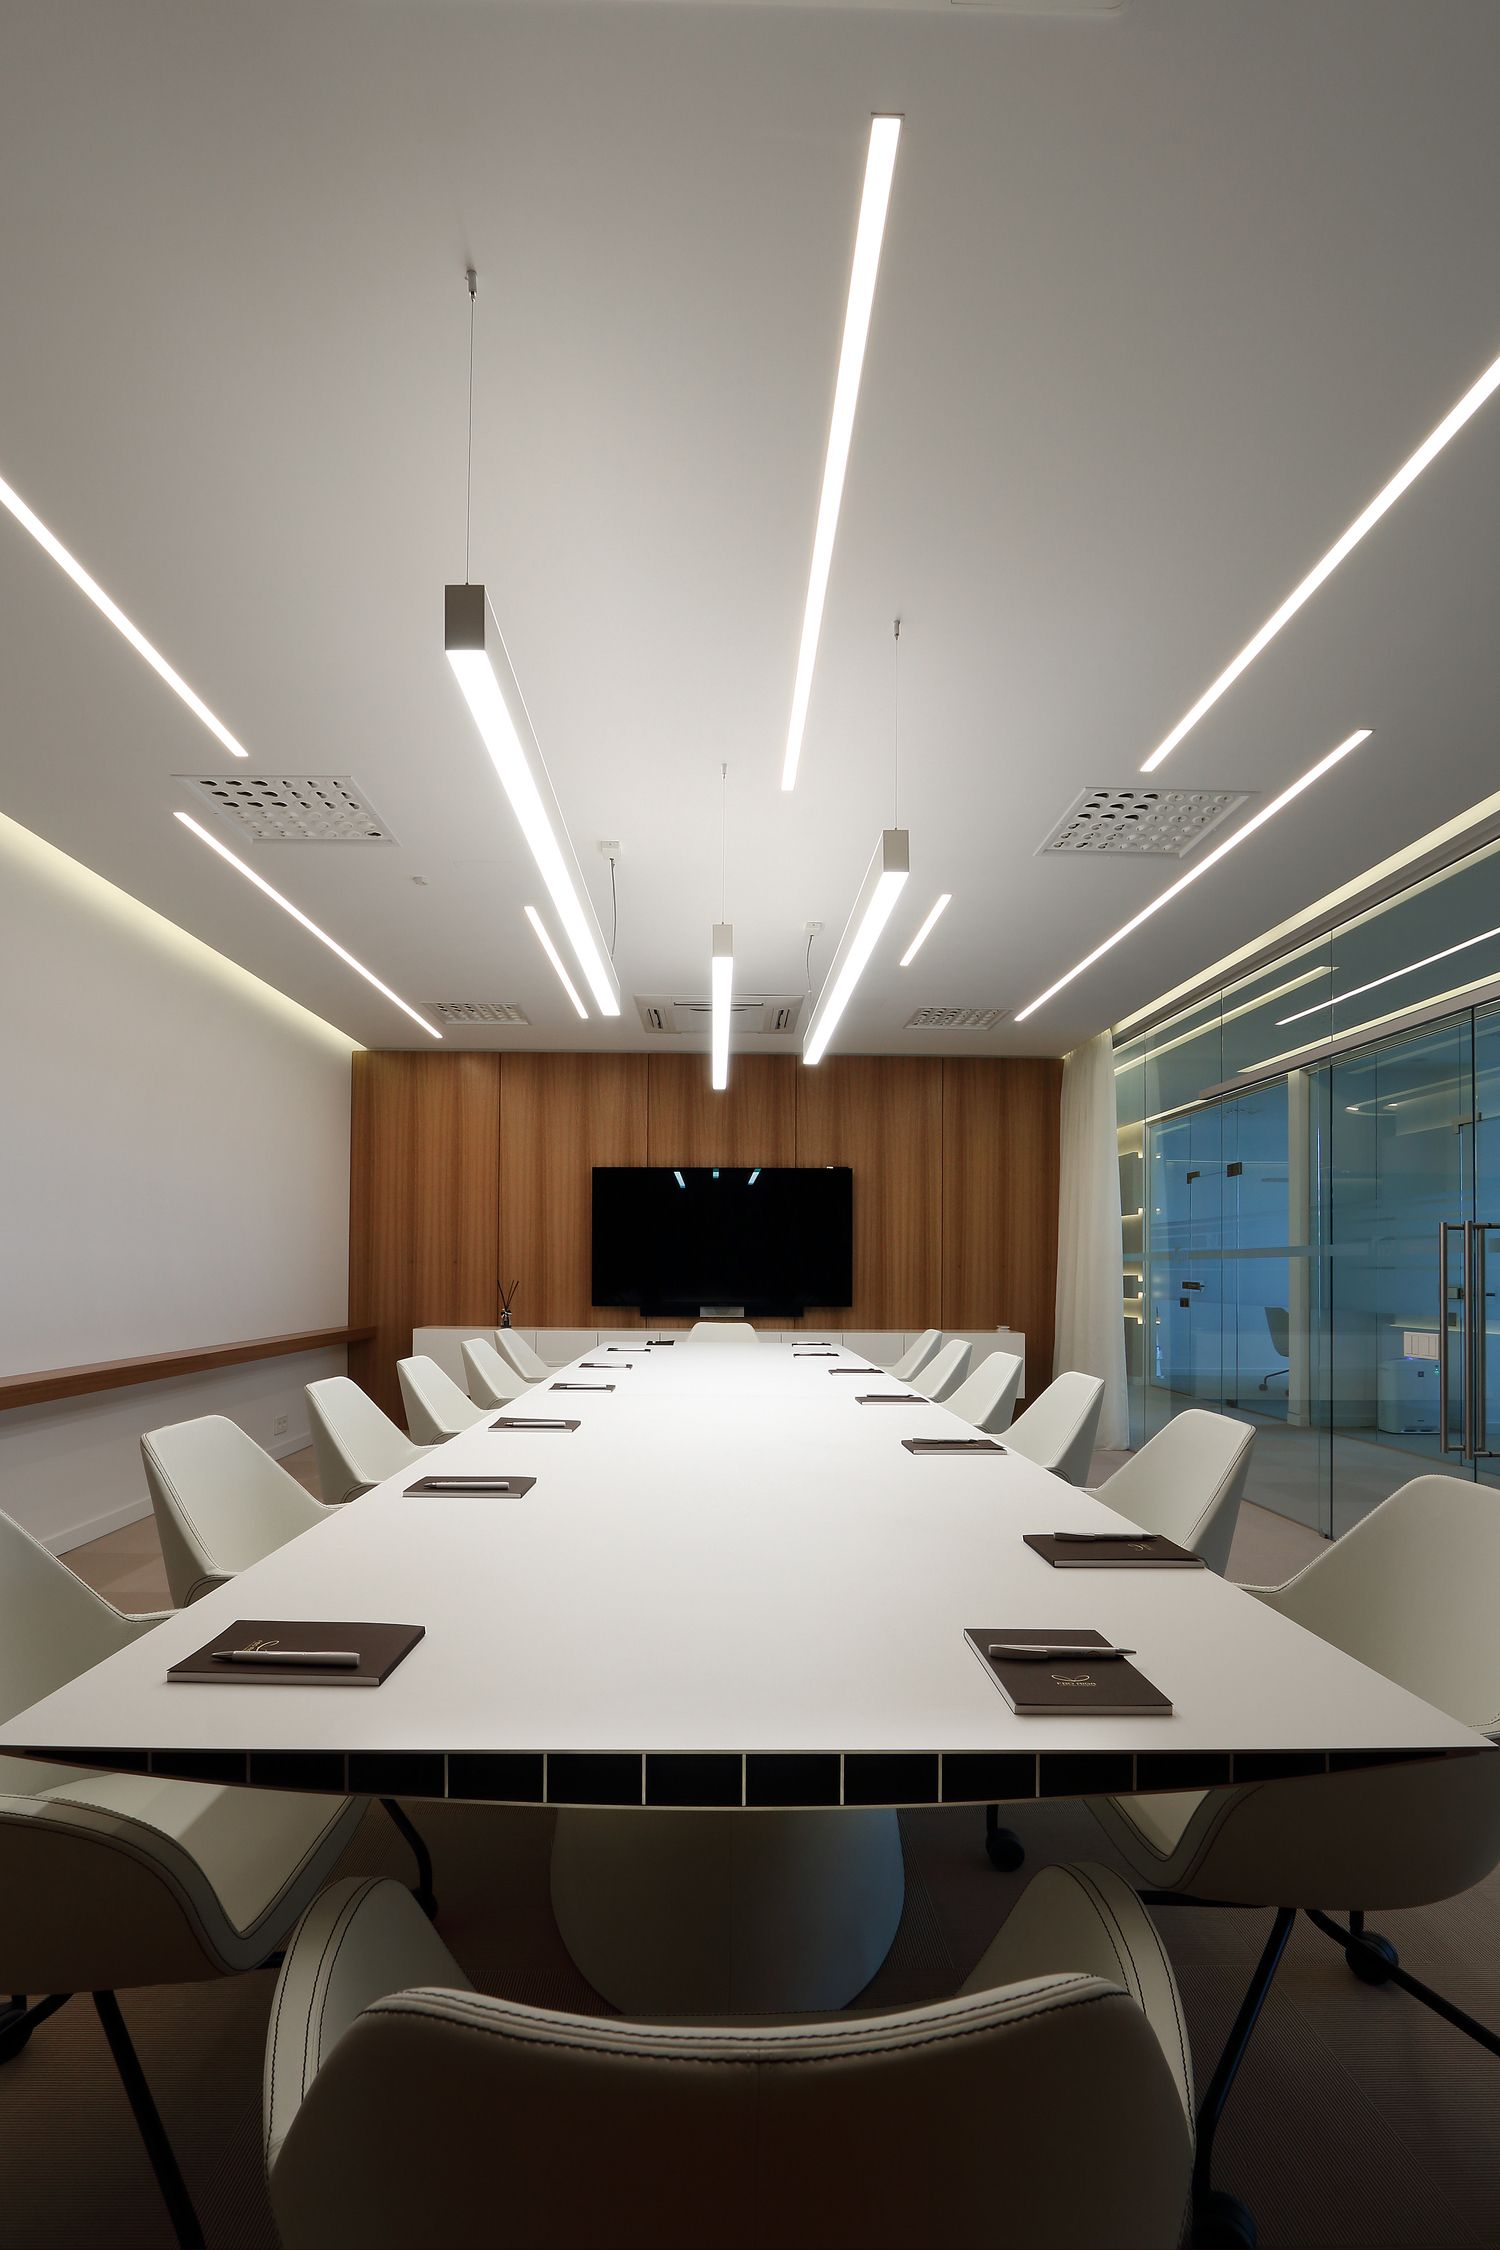 Conference Room Interior Design: Conference Room Design, Meeting Room Design